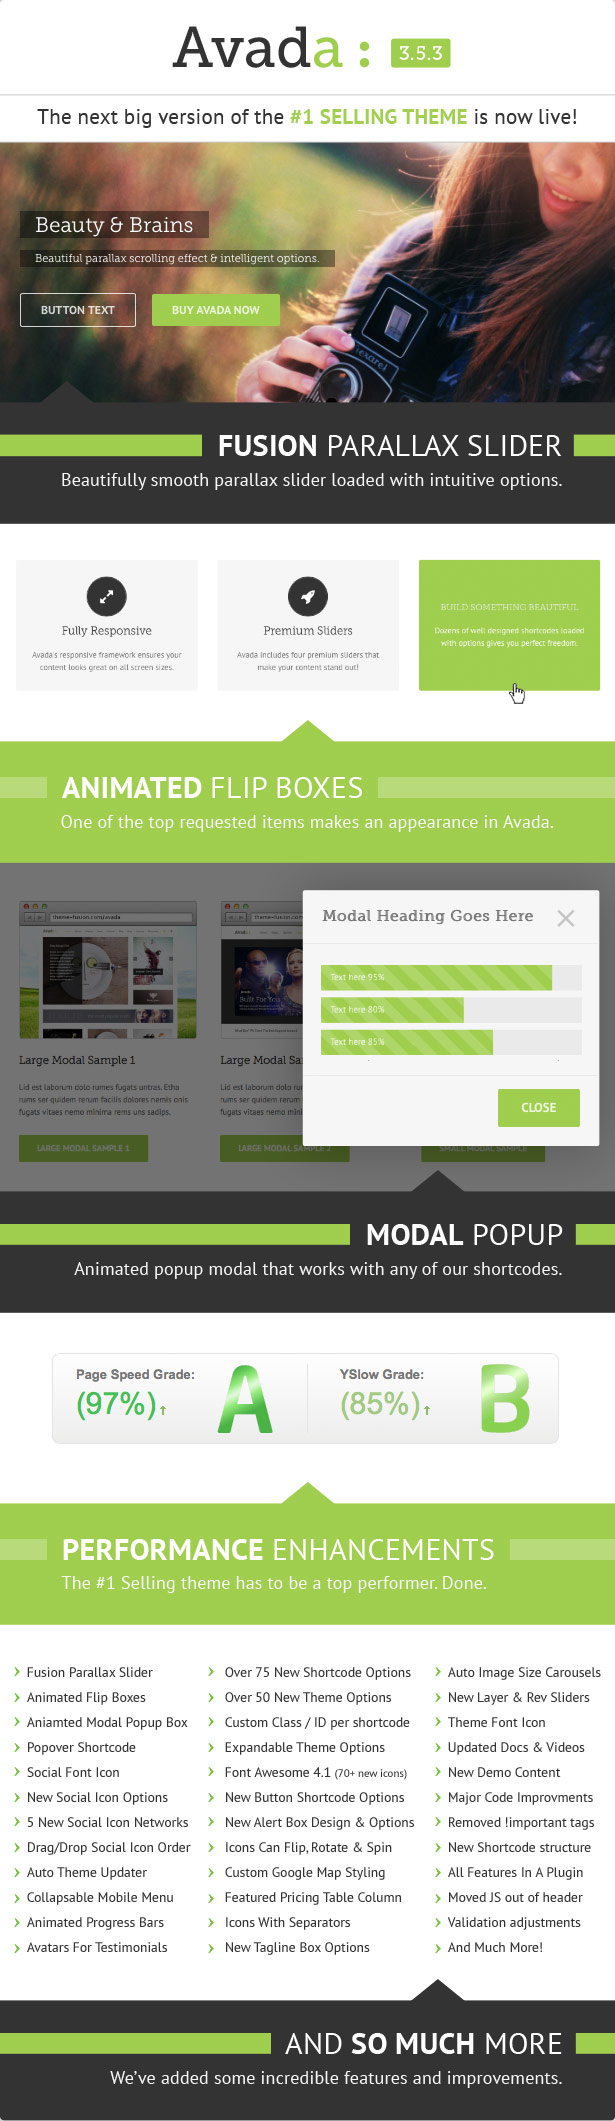 Avada Responsive Multi-Purpose WordPress Theme